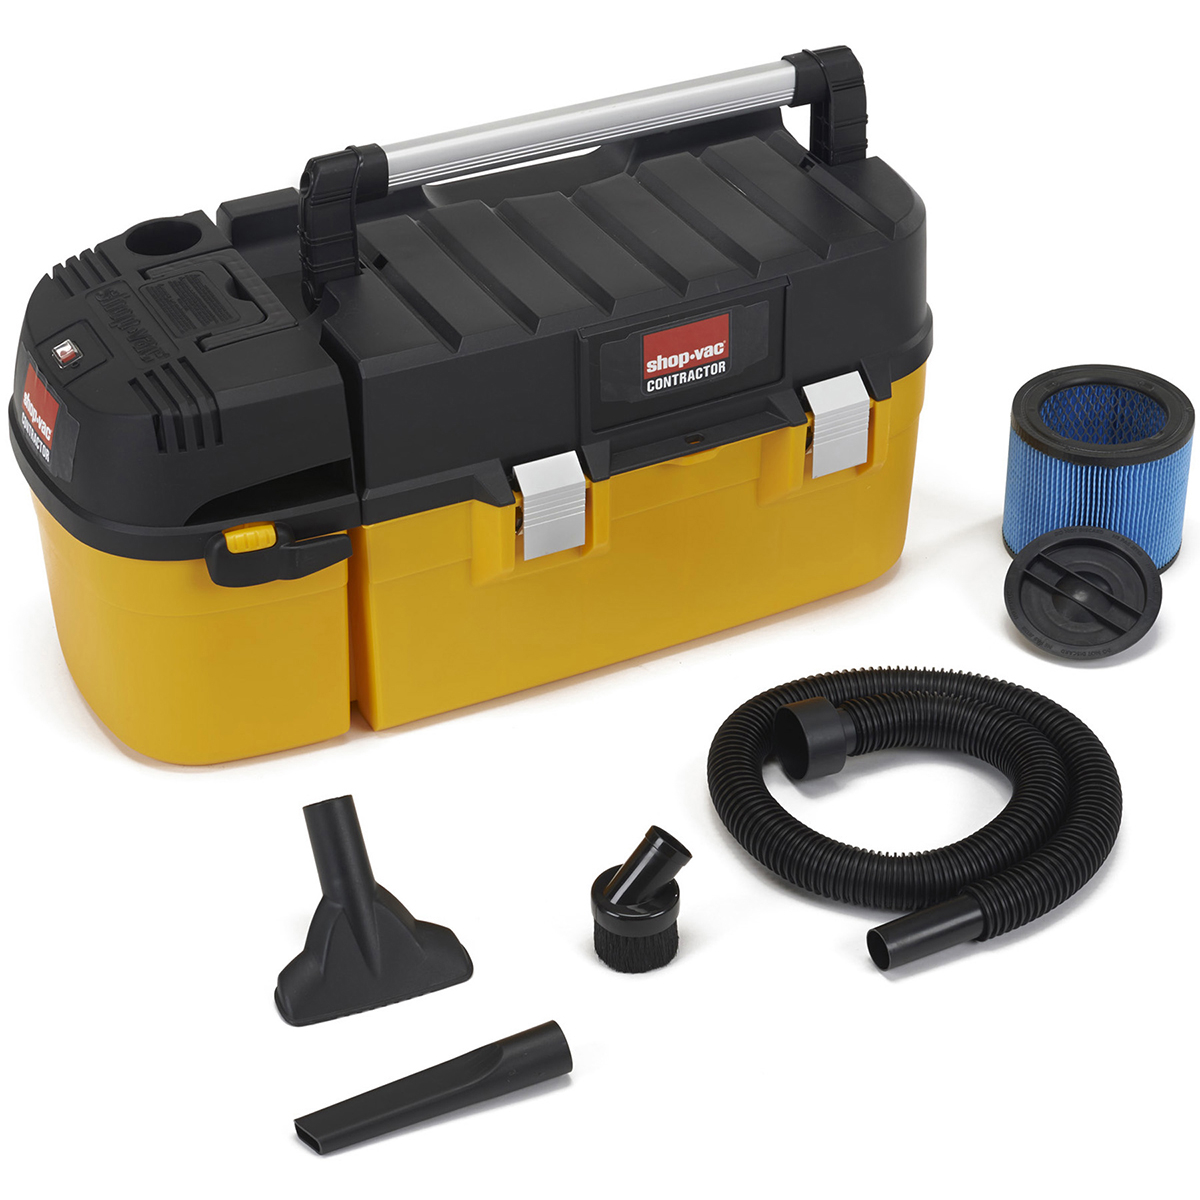 Shop Vac 3880210 2.5 Gallon 2.5 HP Wet & Dry Vac With Removable Toolbox